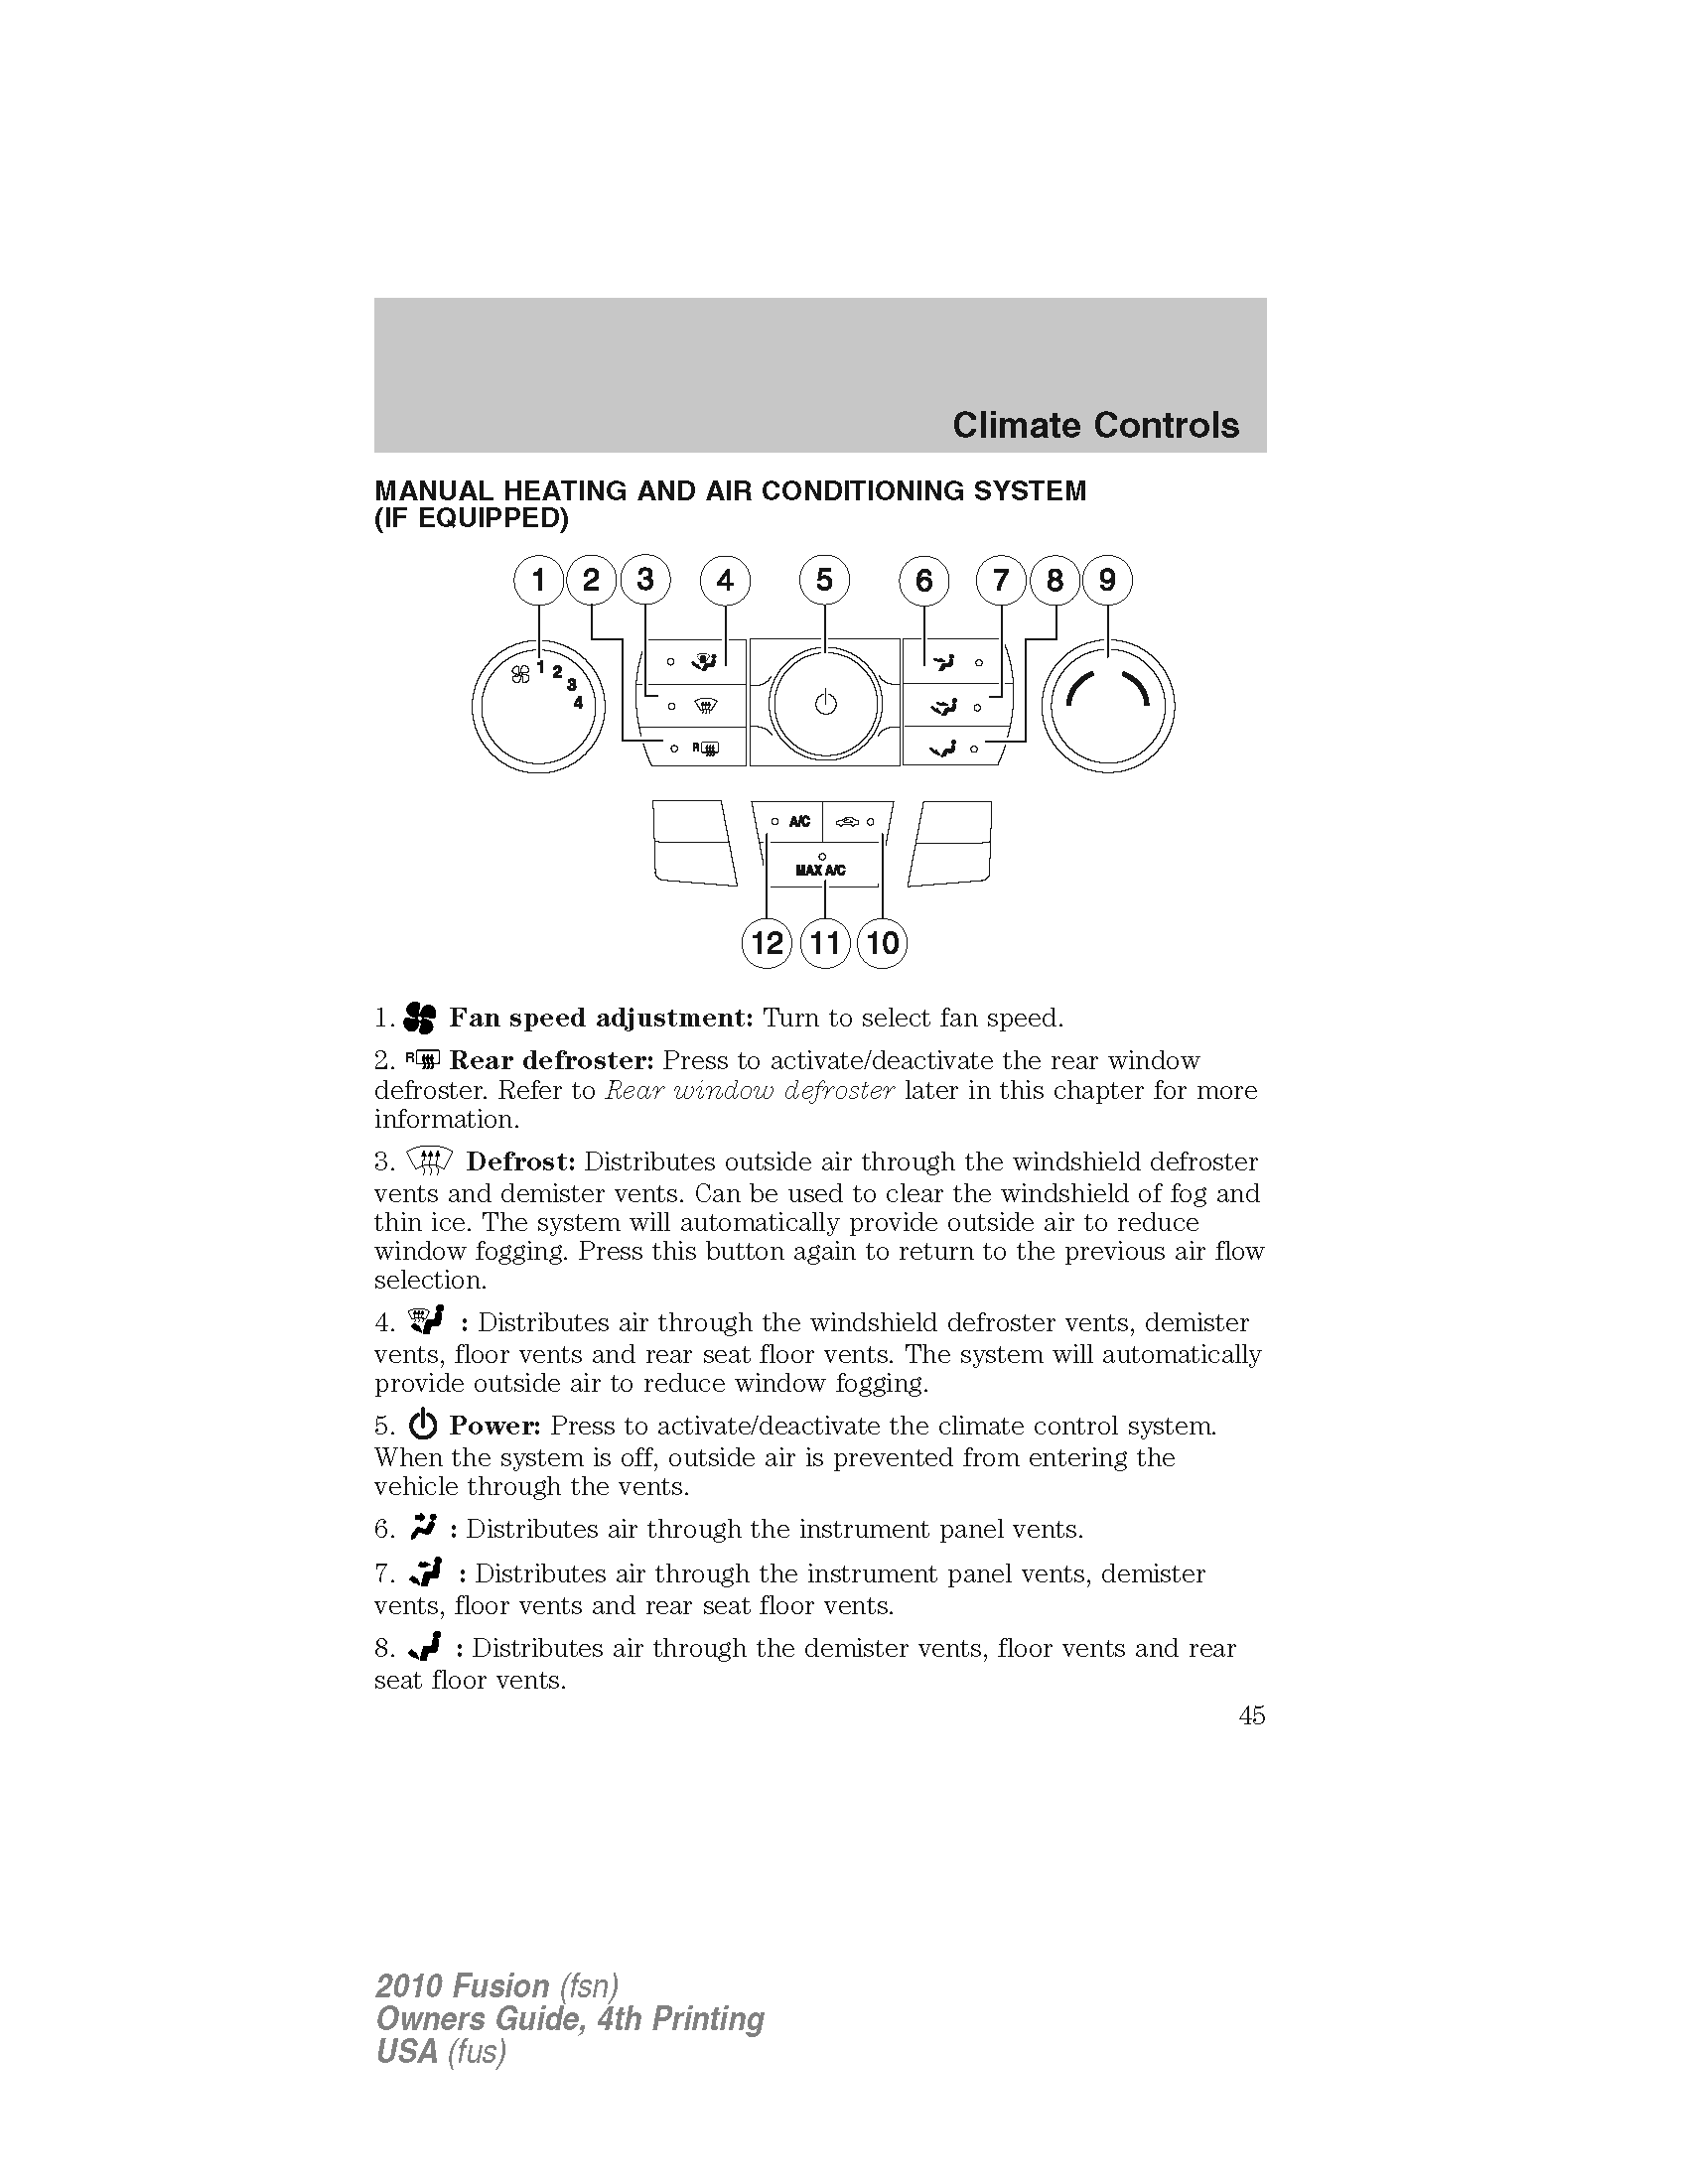 Ford Fusion 2010 Owners Manual Pdf